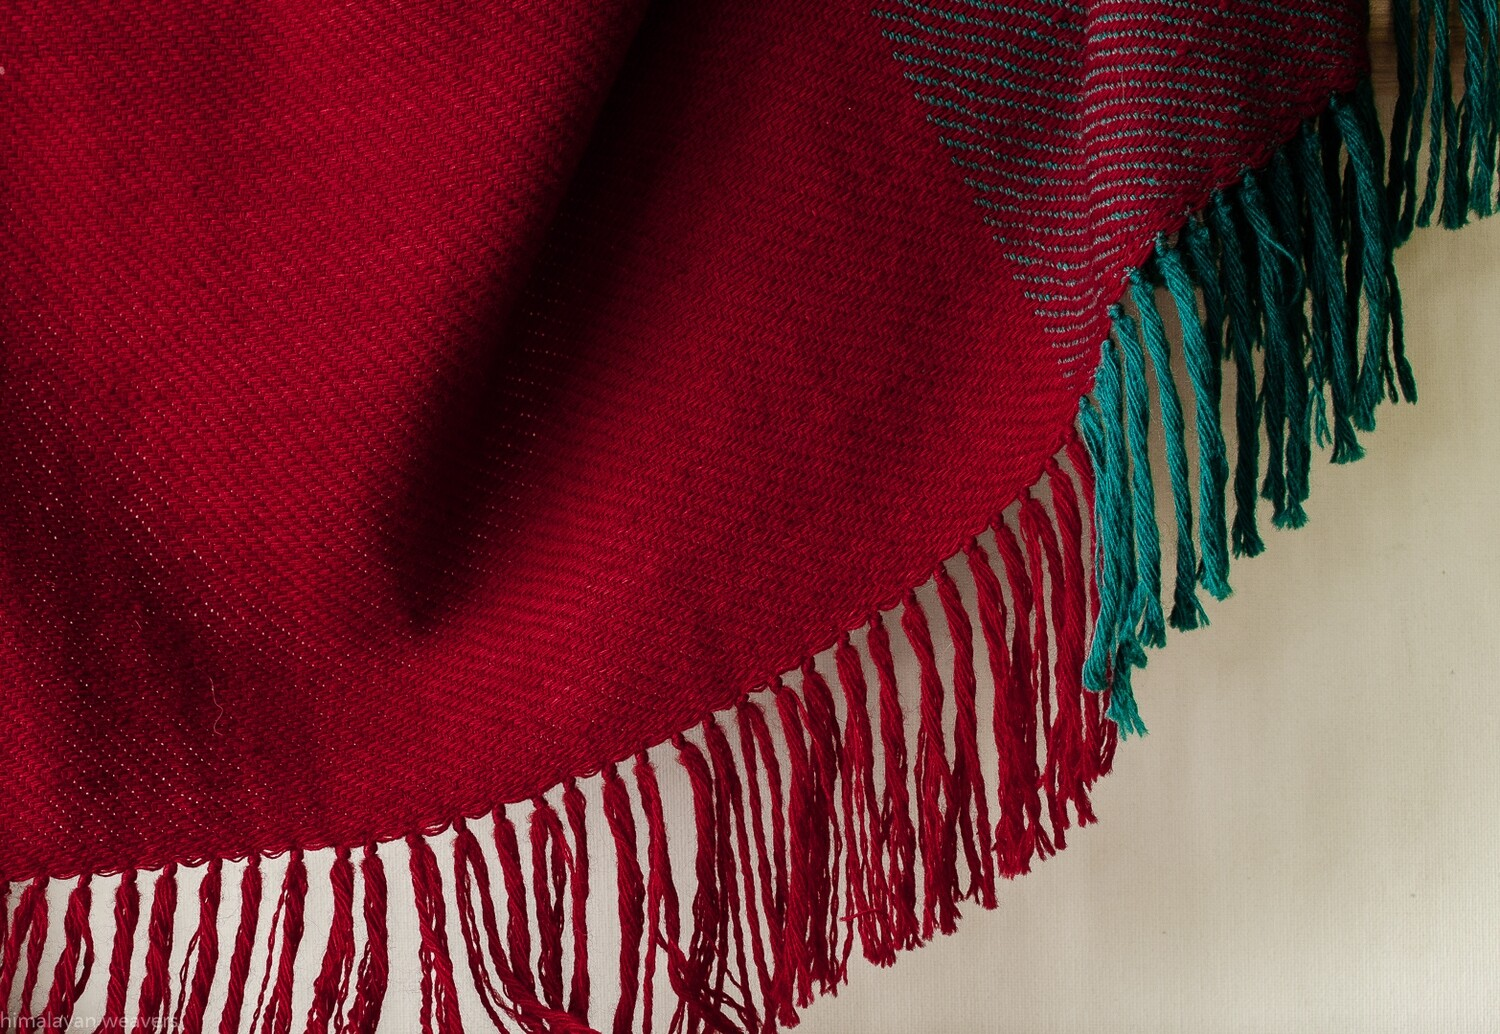 Hand-woven woollen stole dyed with madder, indigo and tesu flowers